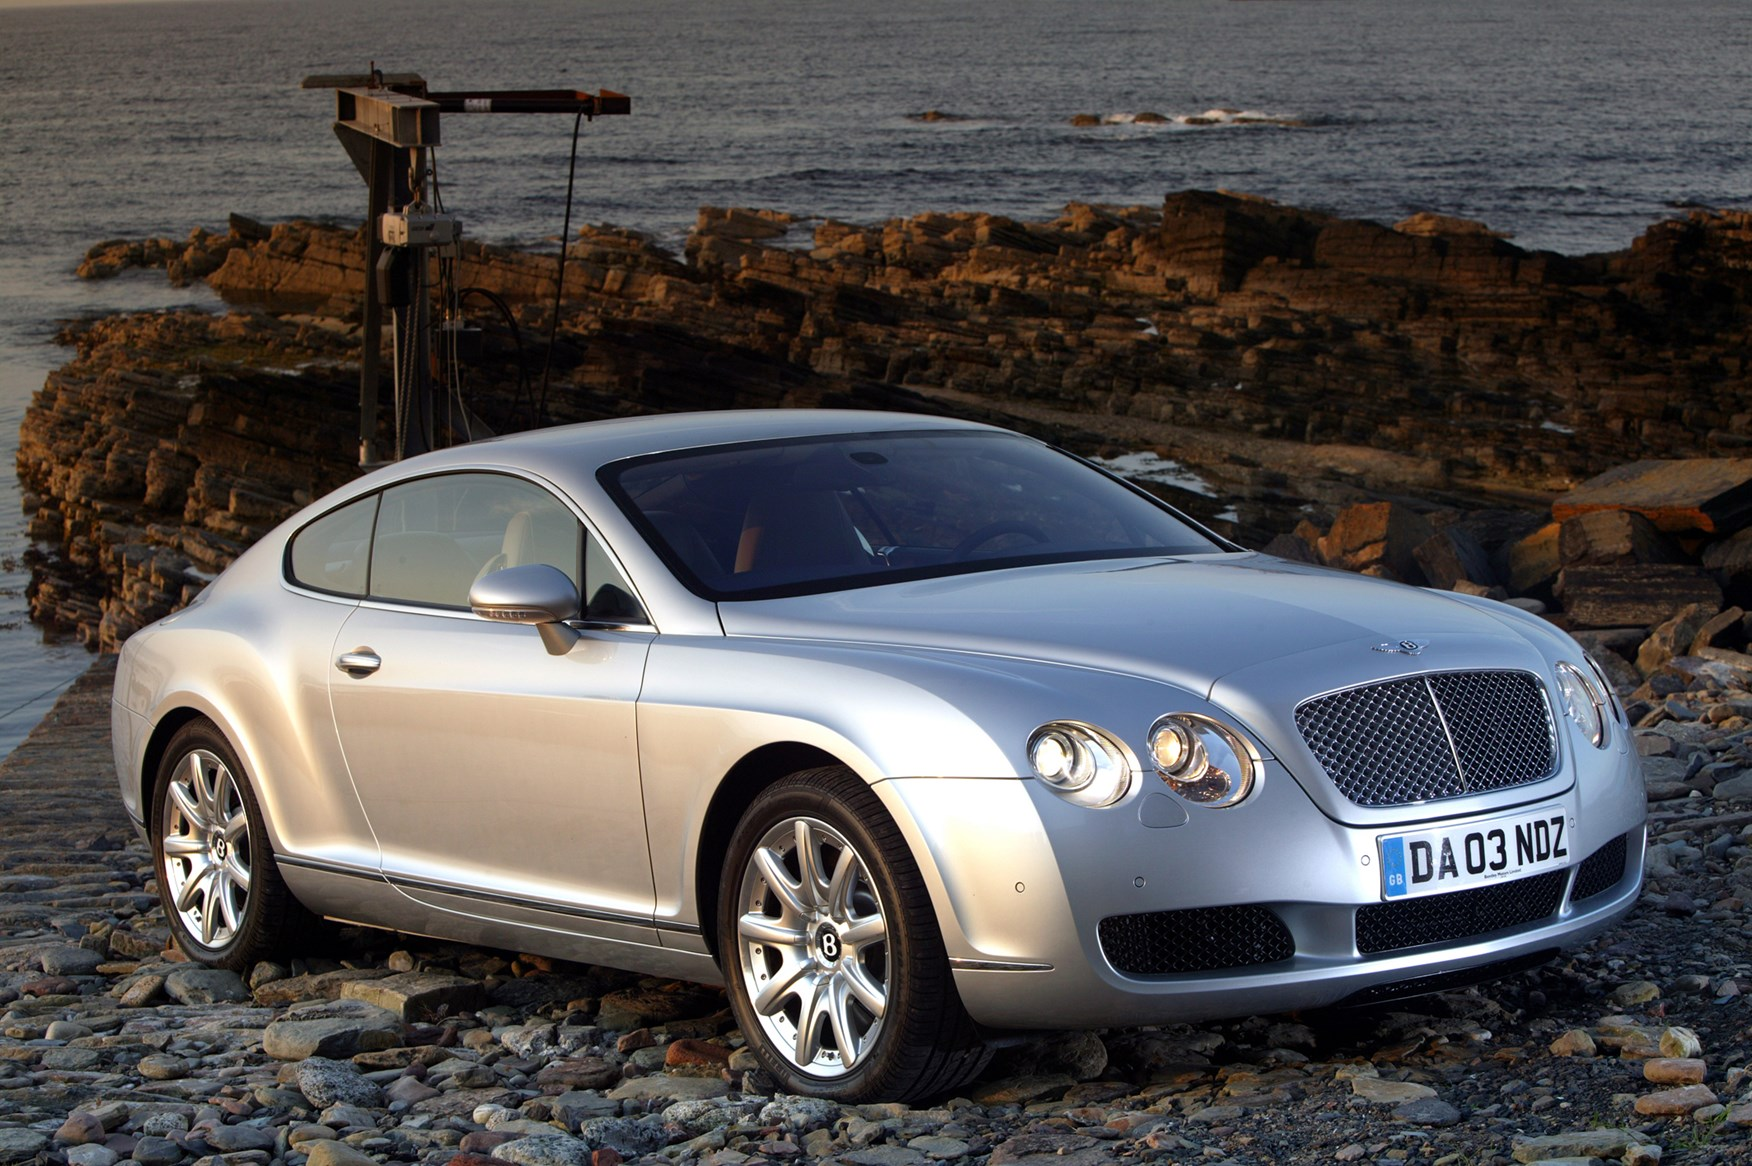 Used Bentley Continental Gt Coupe 2003 2011 Mpg Parkers